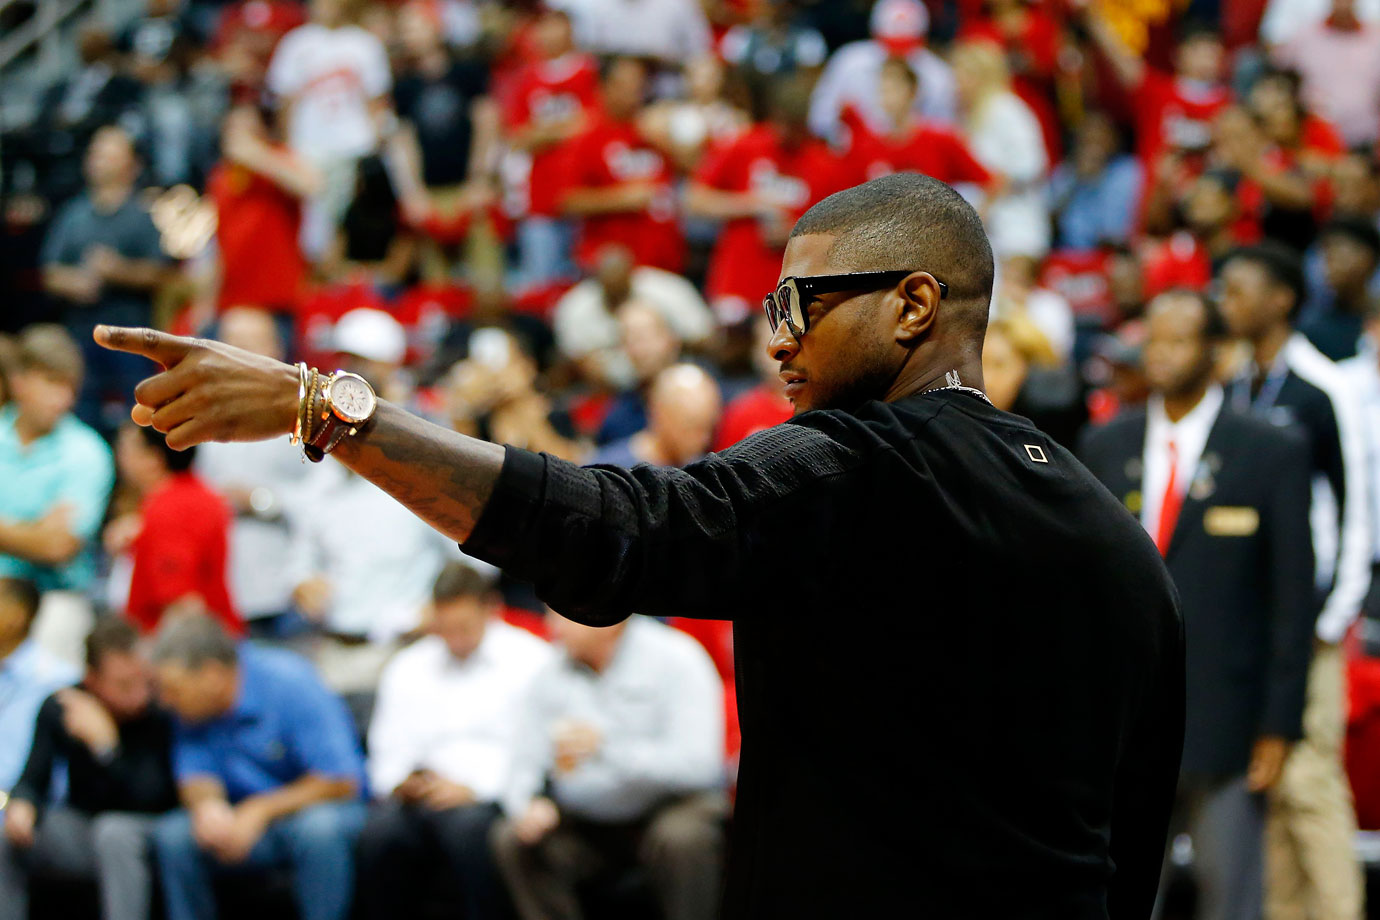 May 20, 2015: Atlanta Hawks vs. Cleveland Cavaliers at Philips Arena in Atlanta — Eastern Conference Finals, Game 1